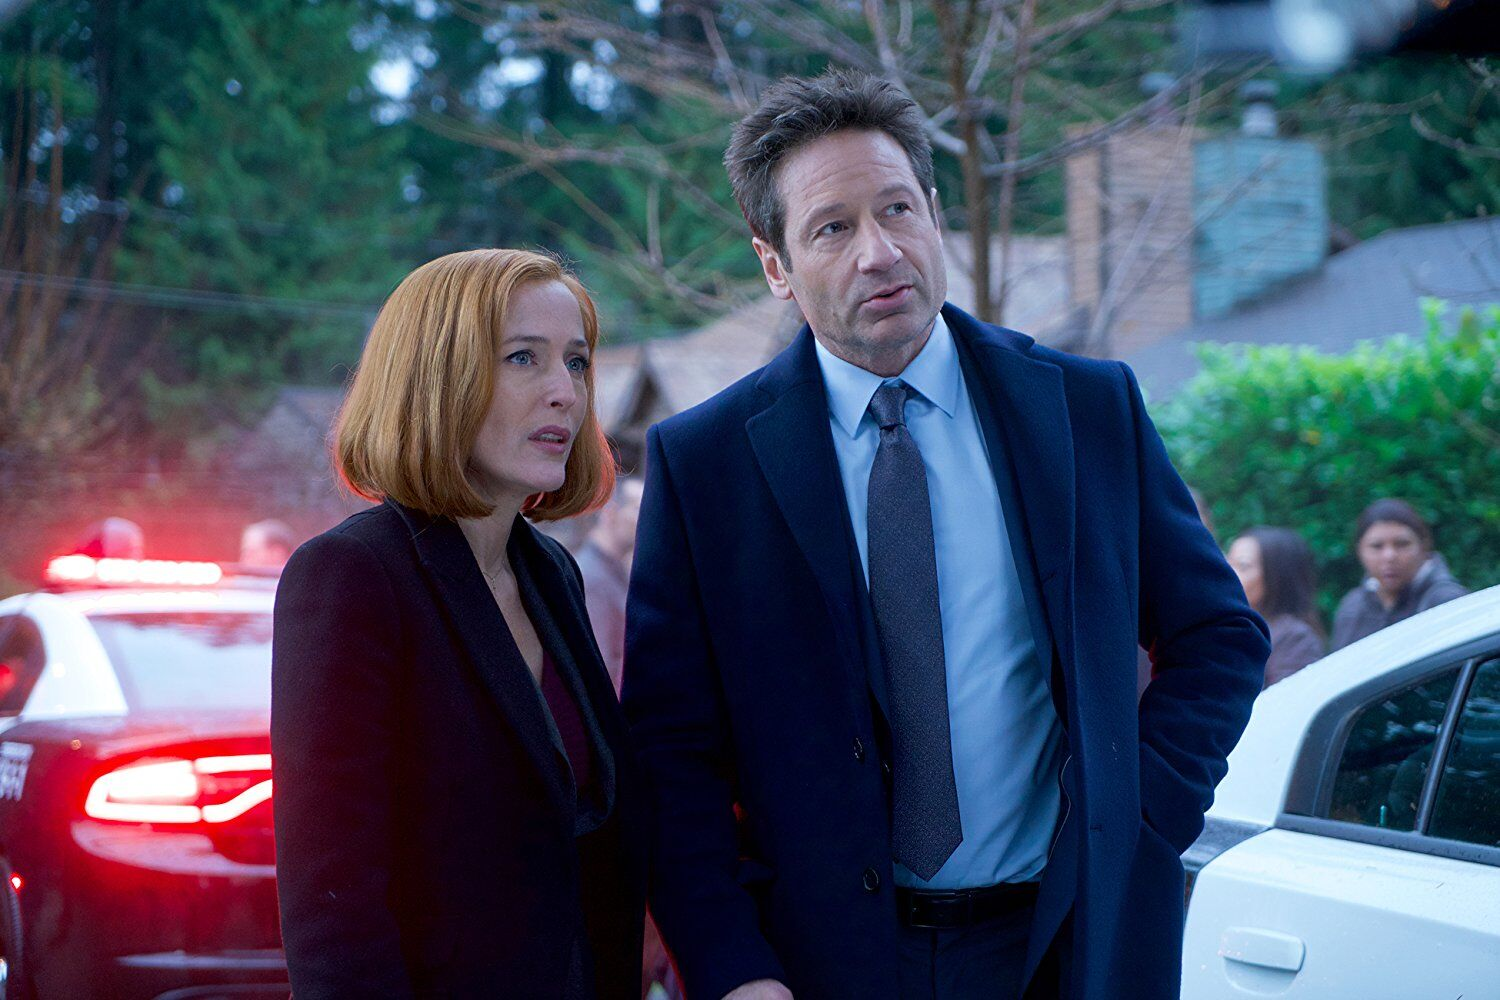 The-X-Files-Familiar-Mulder-and-Scully-Courtesy-of-Fox.jpg&c=sc&w=1500&h=1000